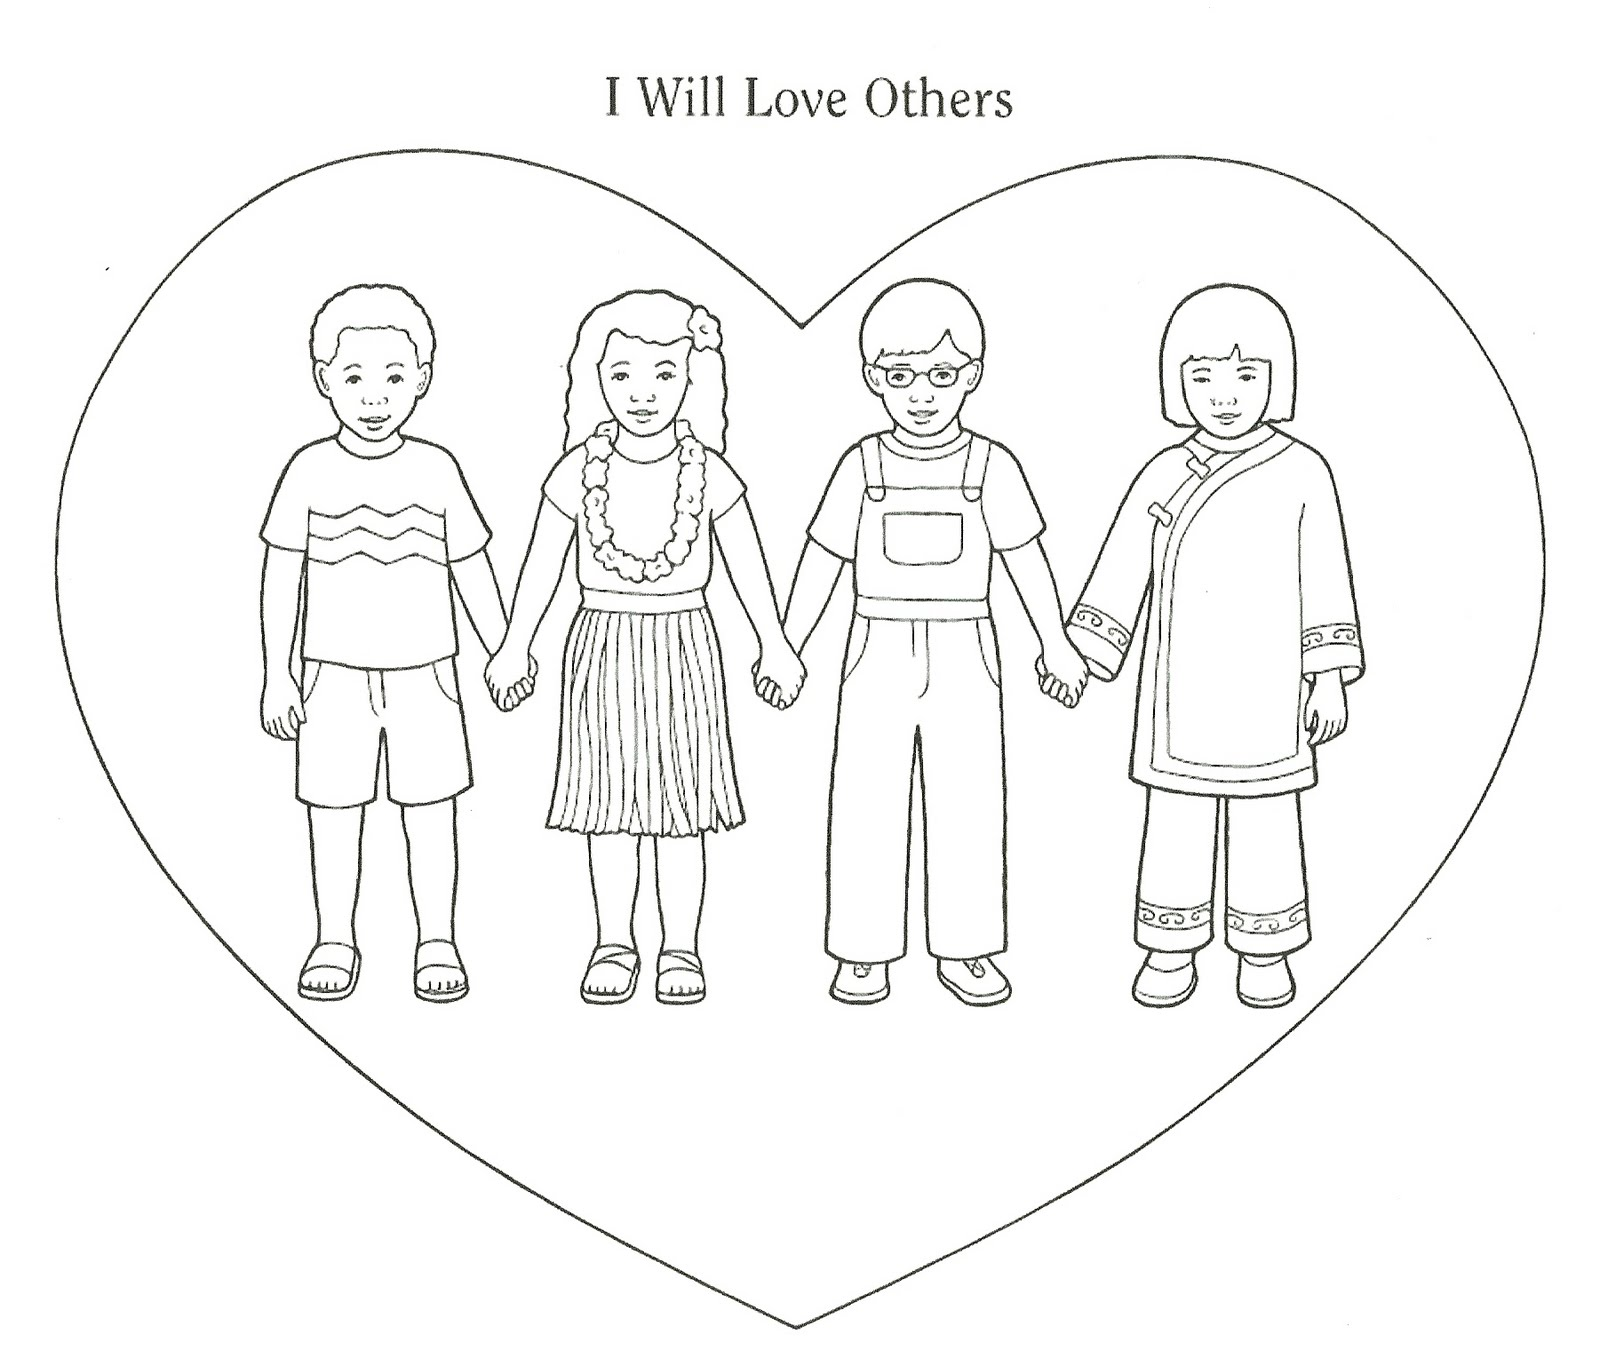 Christian Missionary Coloring Pages. 30 Christian Coloring